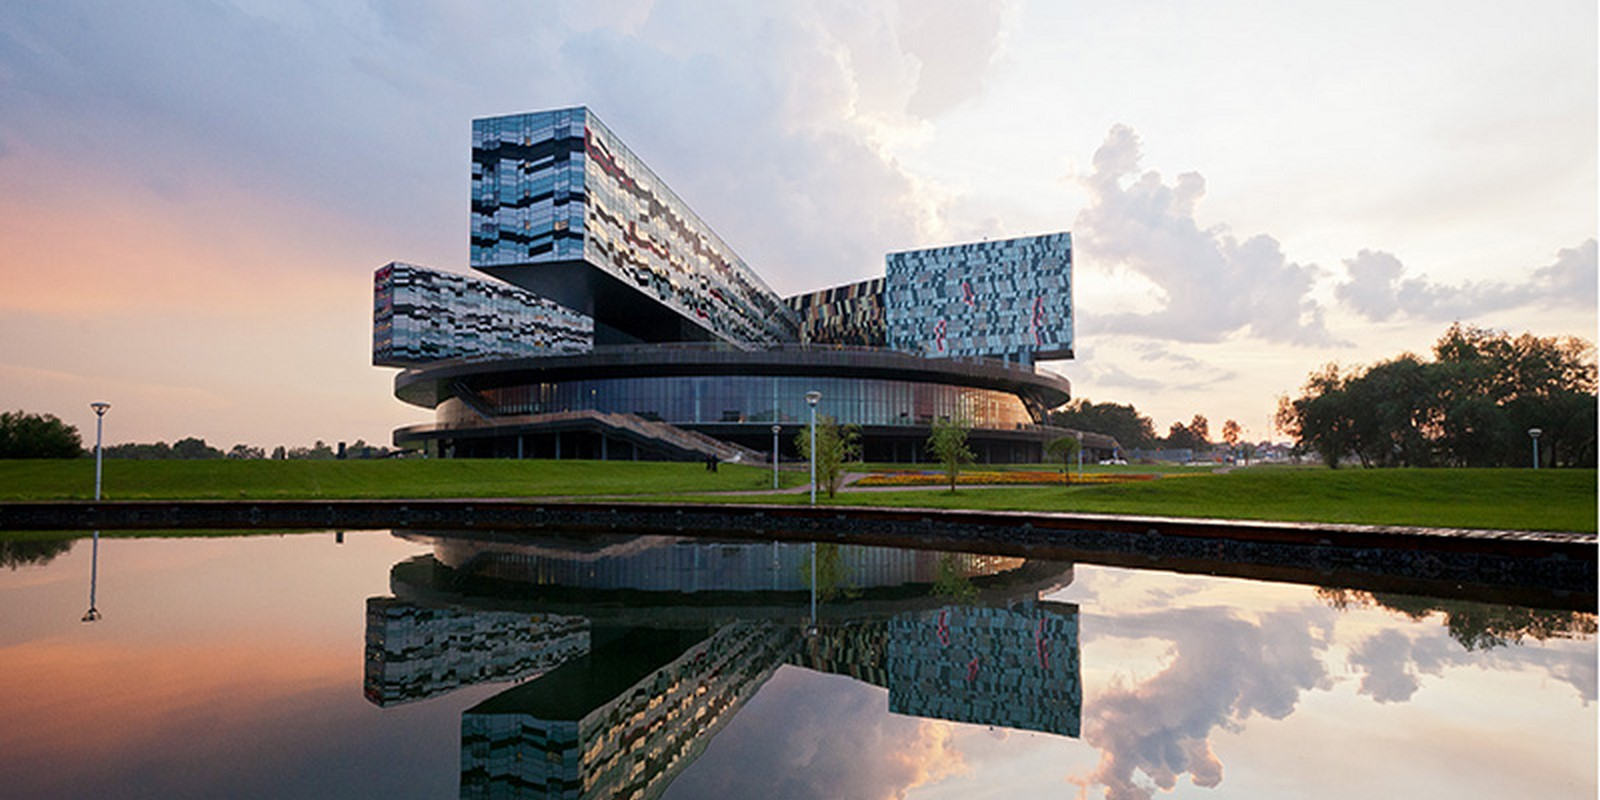 Moscow School of Management, Skolkovo, Russia by David Adjaye- Design inspired by Geometric Abstract Artwork - Sheet2